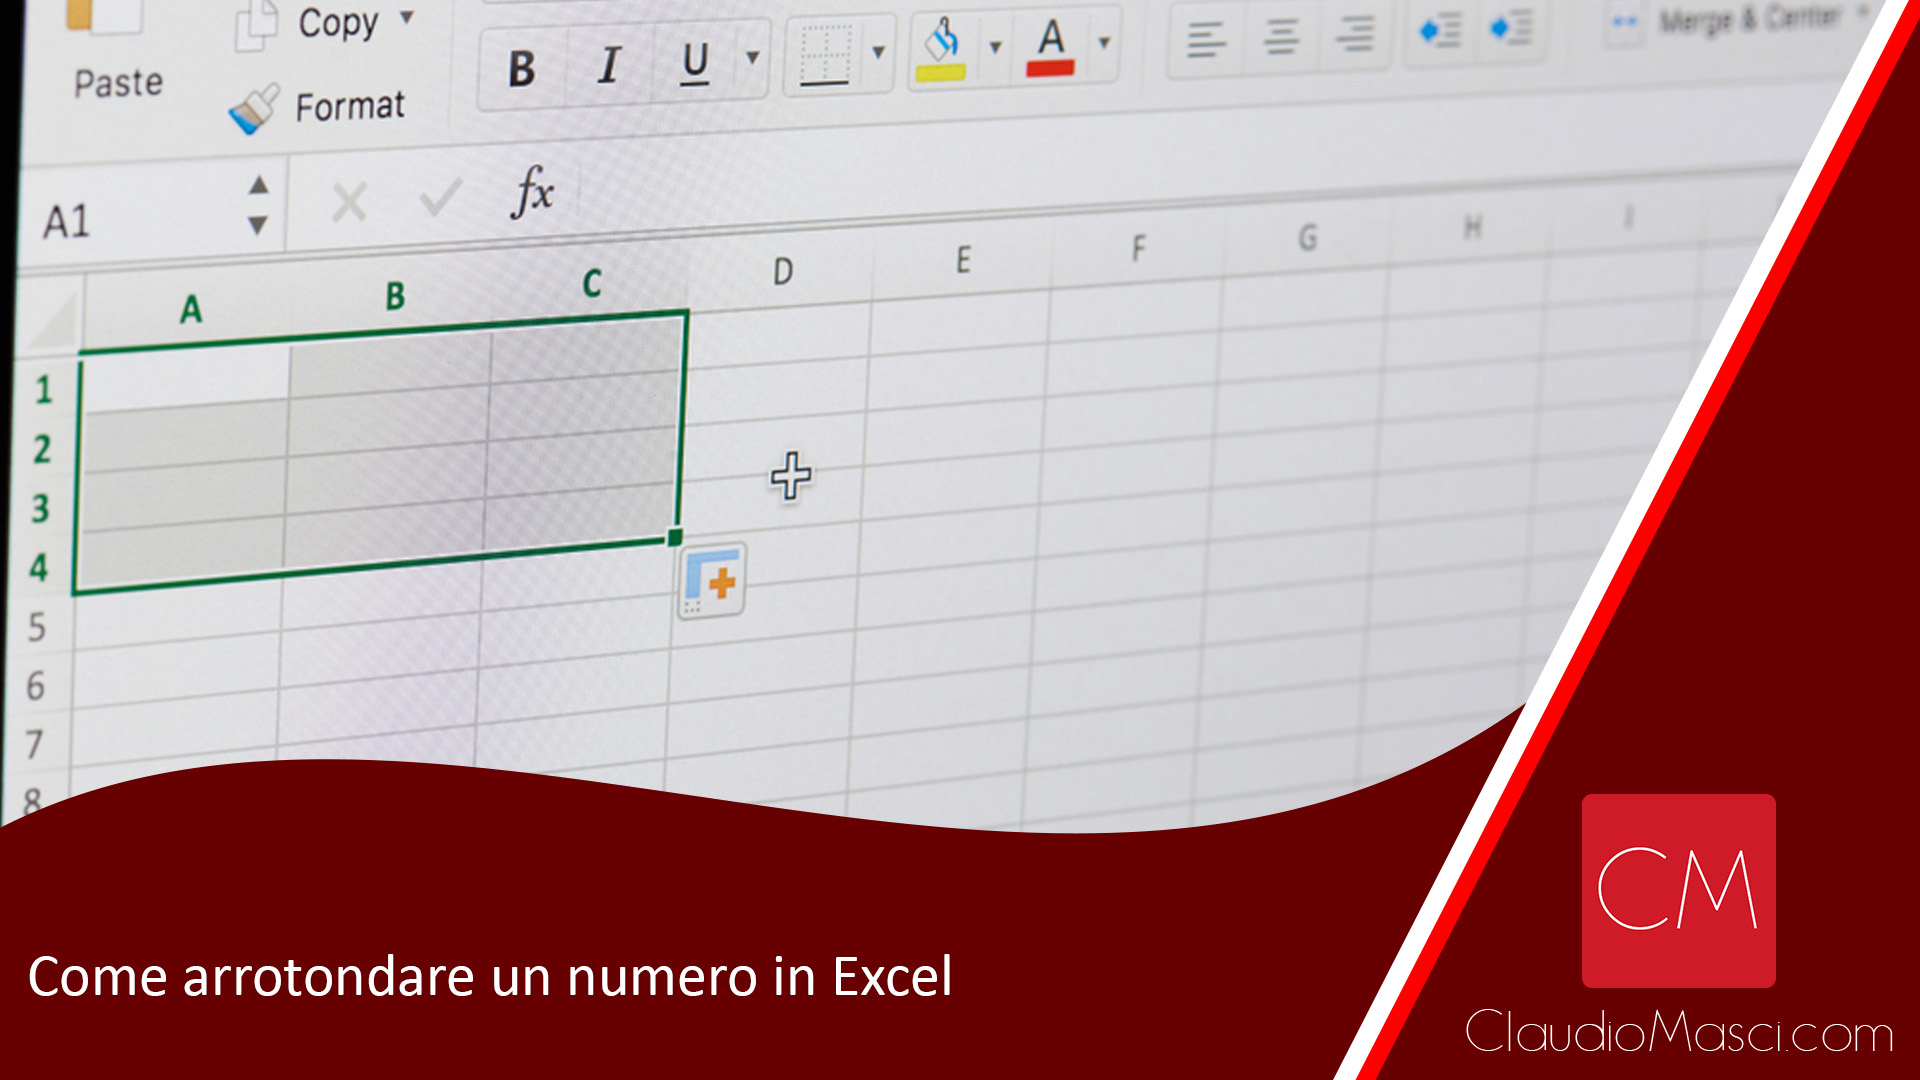 Come arrotondare un numero in Excel